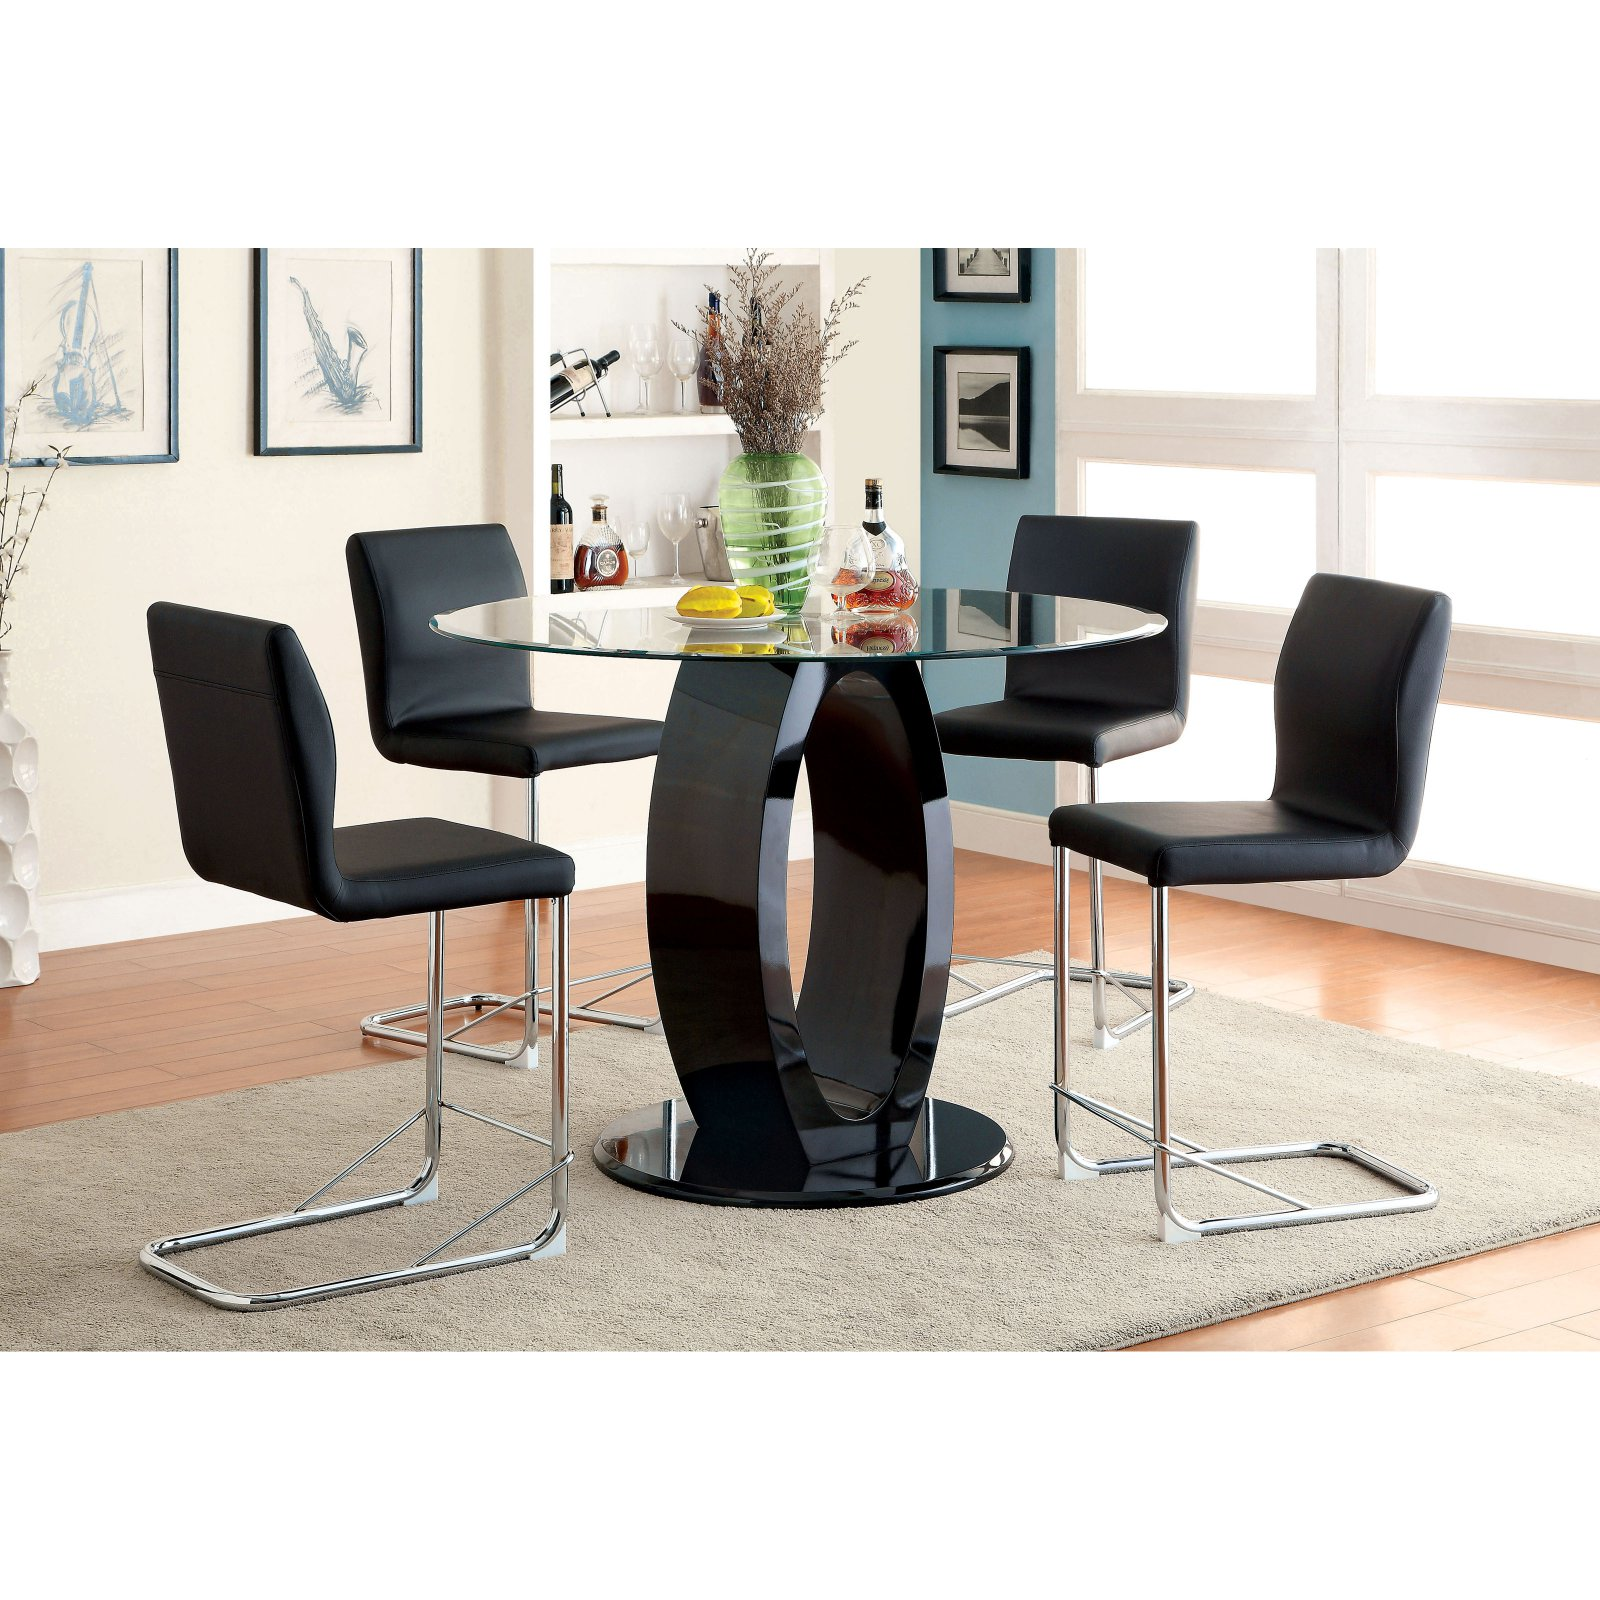 Furniture of America Damore Contemporary Counter Height High Gloss Round Dining Table